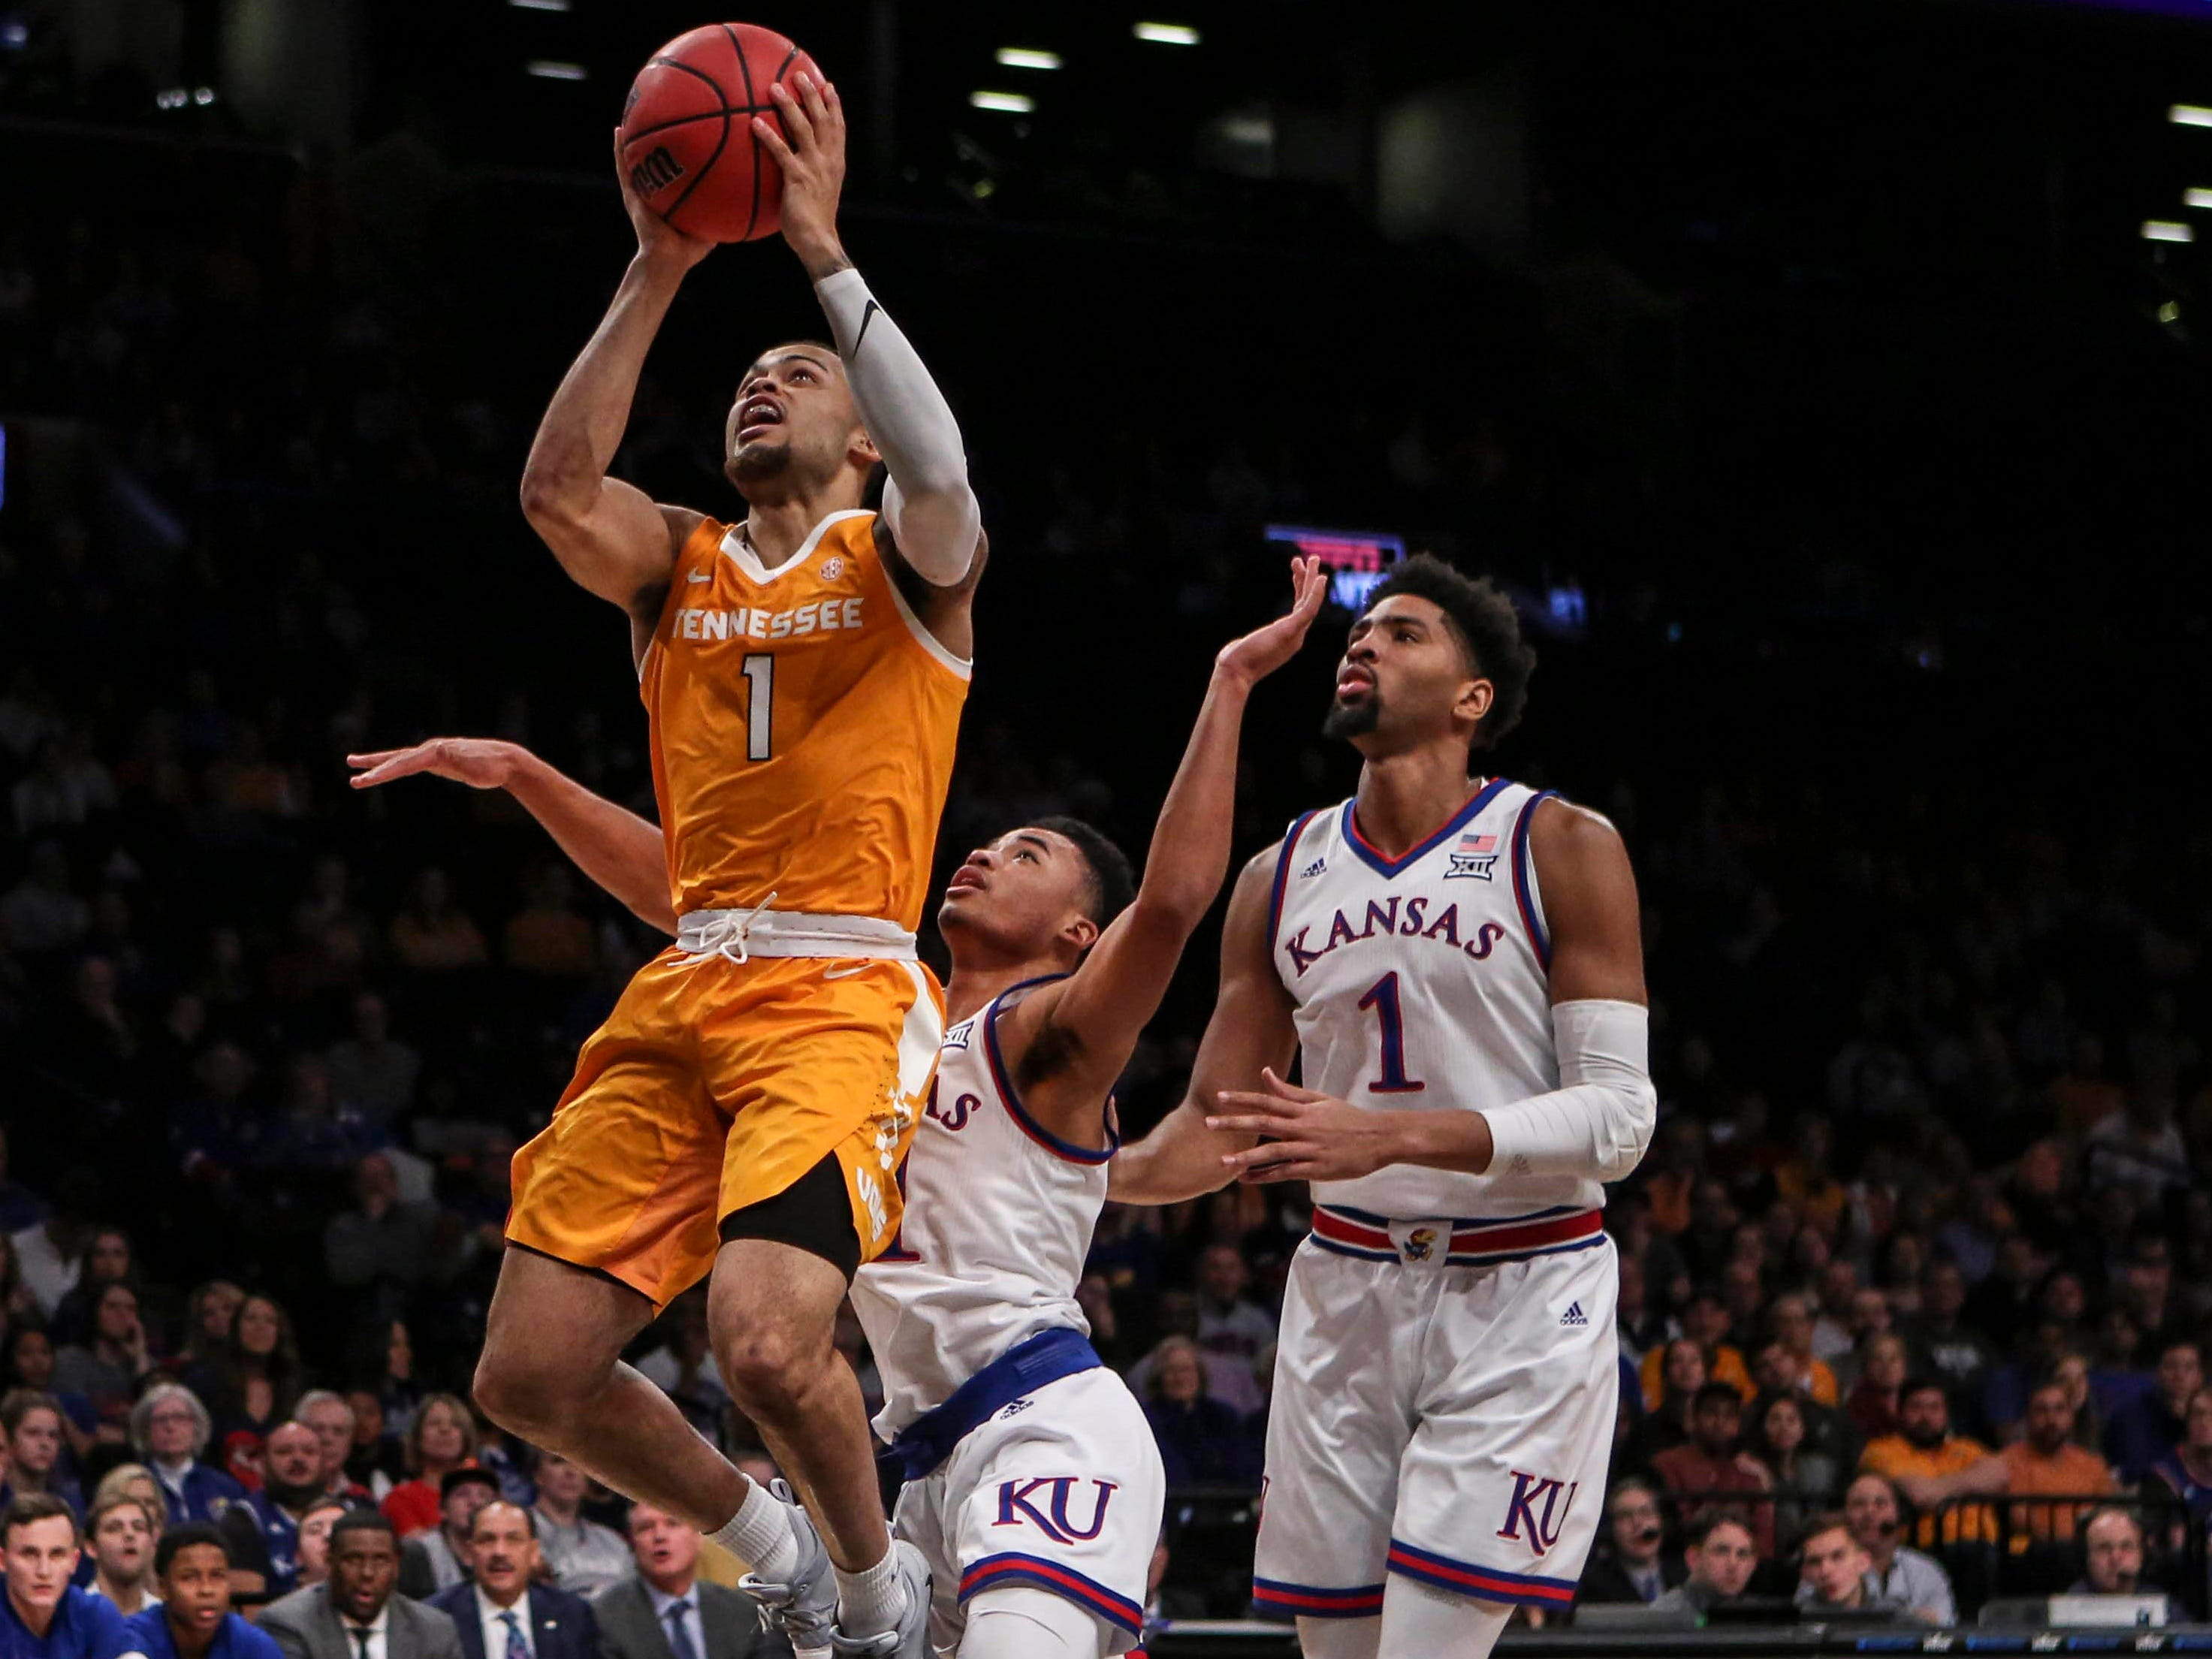 Nov 23, 2018; Brooklyn, NY, USA; Tennessee Volunteers guard Lamonte Turner (1) puts up a shot in the first half of the championship game of the NIT Season Tipoff against the Kansas Jayhawks at Barclays Center. Mandatory Credit: Wendell Cruz-USA TODAY Sports